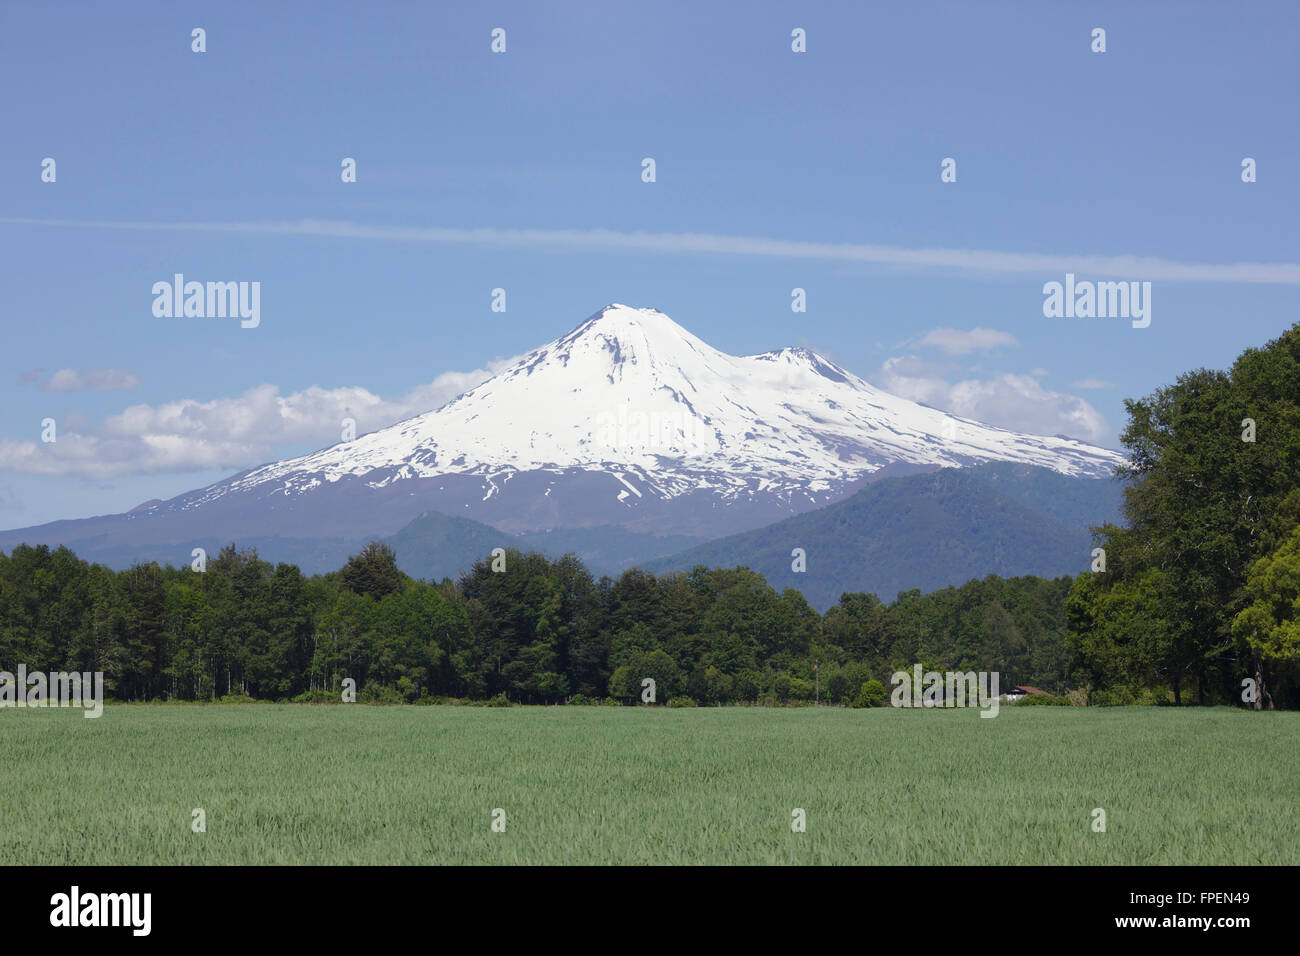 Llaima volcano from West, Lake District, Chile - Stock Image